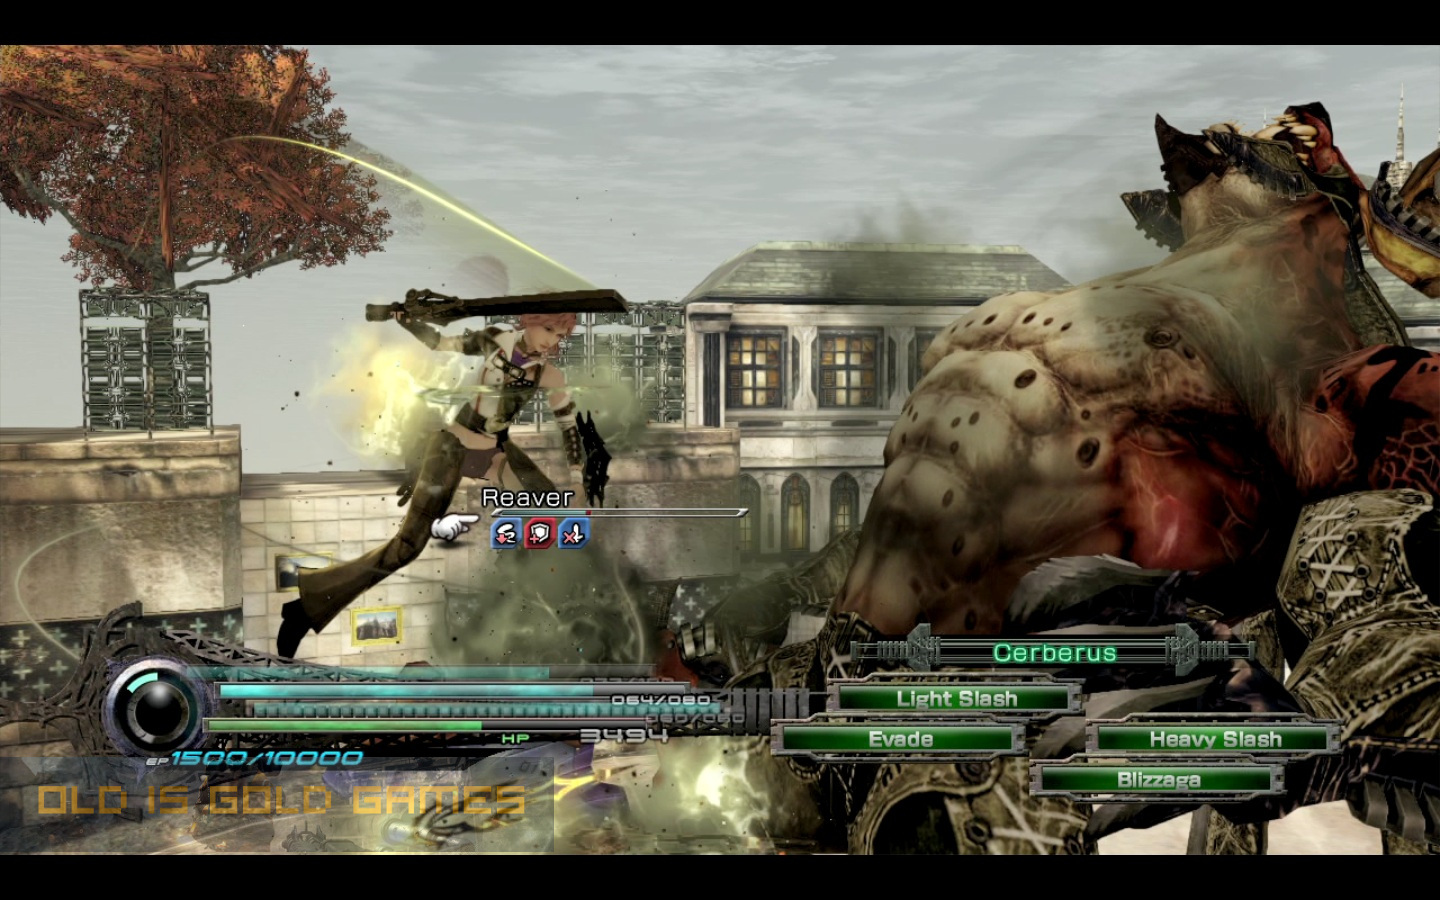 Final Fantasy XIII Download For Free